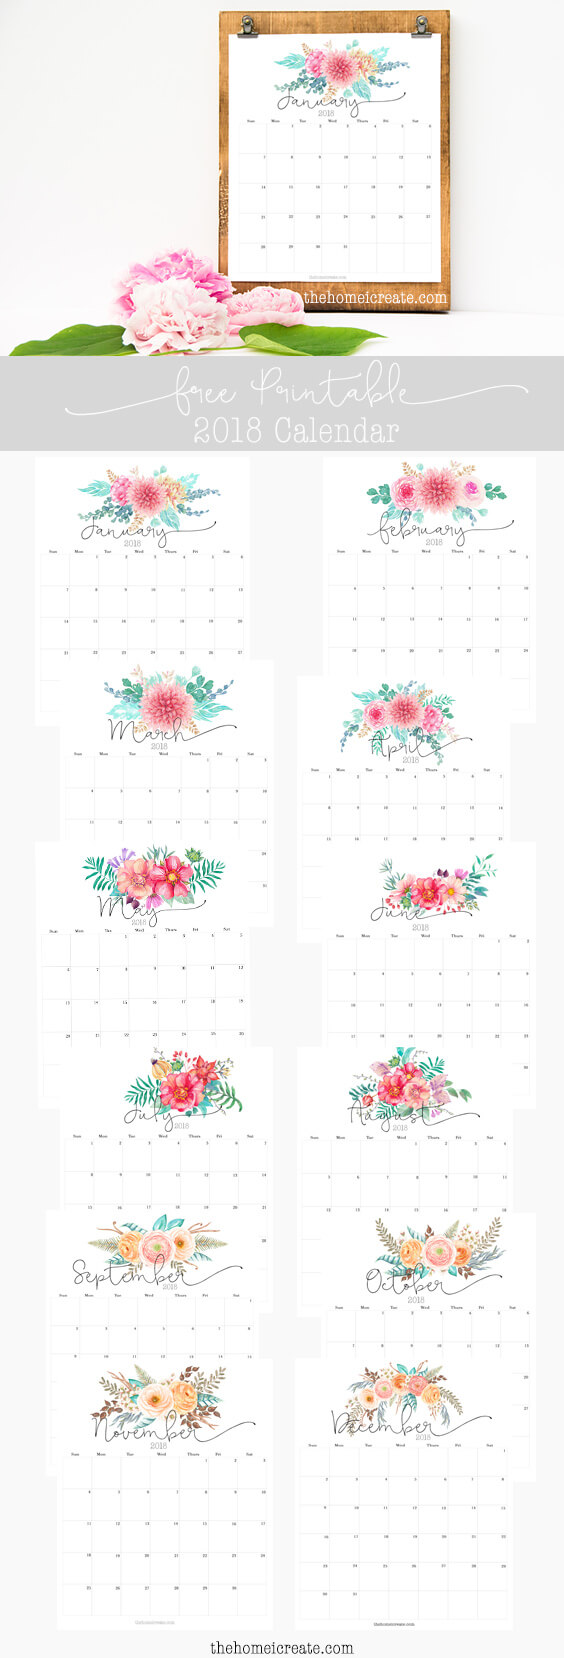 Free 2018 monthly printable calendar | thehomeicreate.com